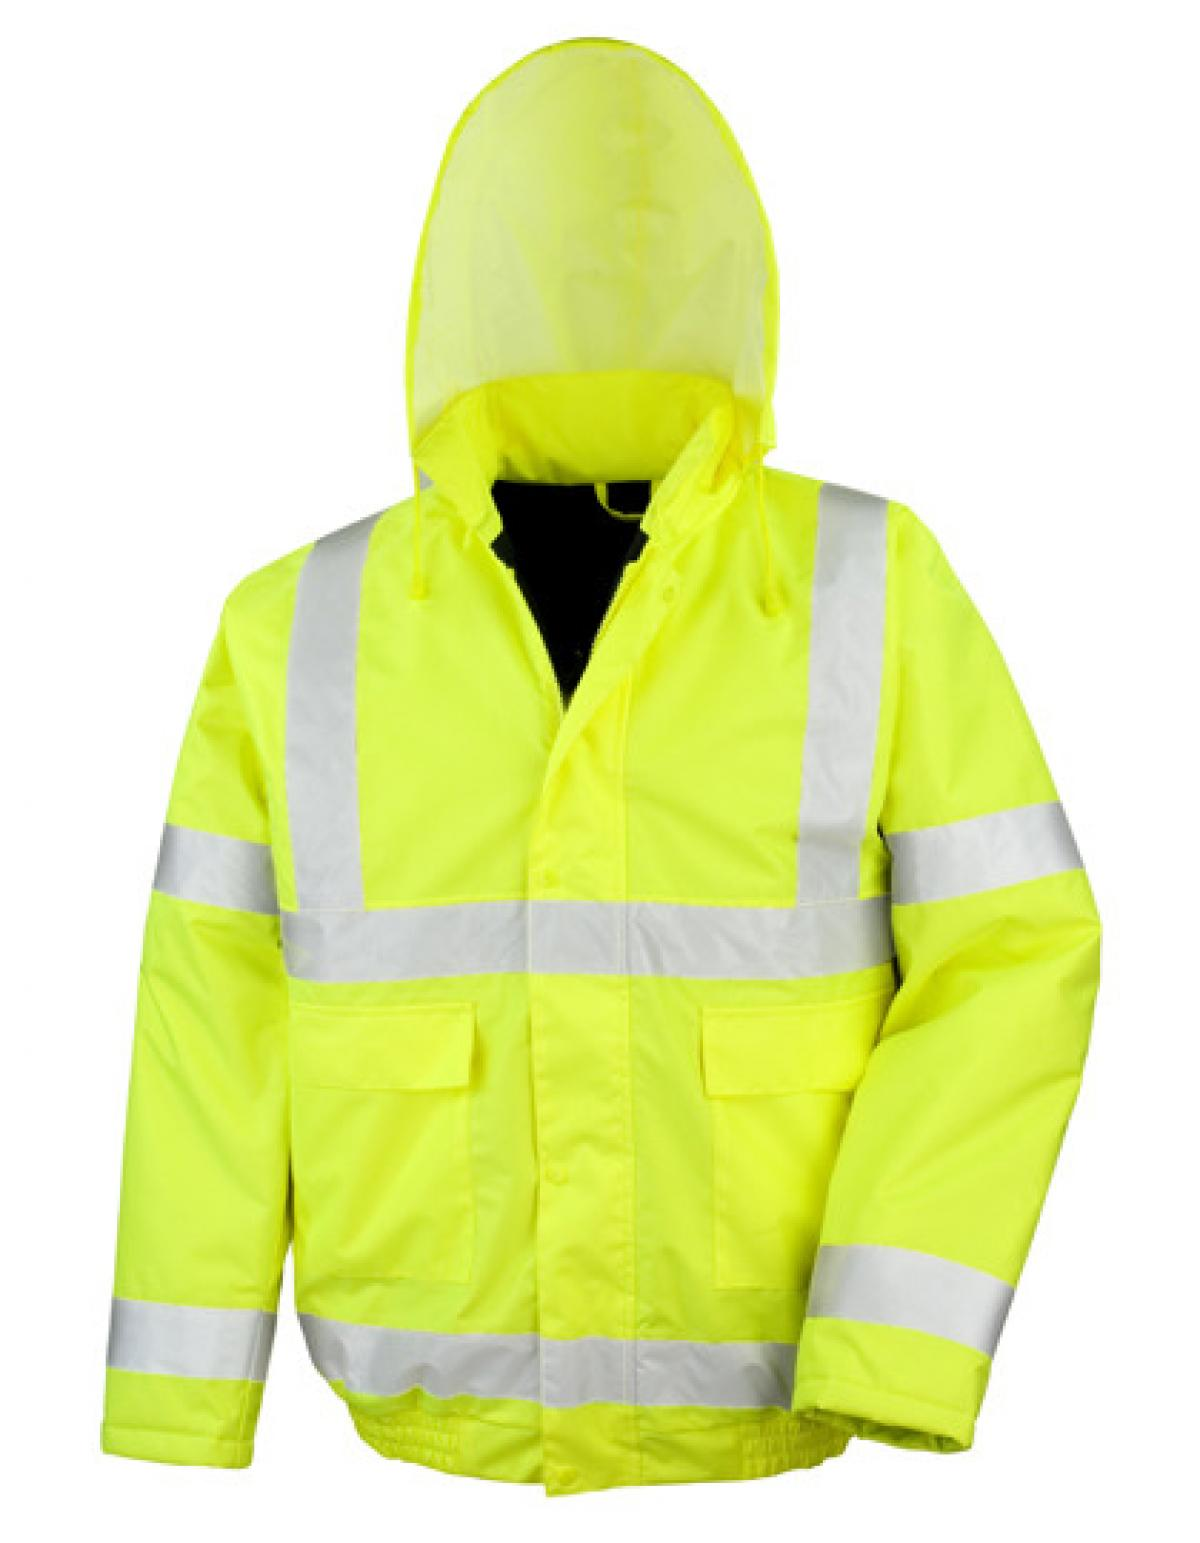 high viz winter blouson arbeitsjacke isoen20471 2013. Black Bedroom Furniture Sets. Home Design Ideas